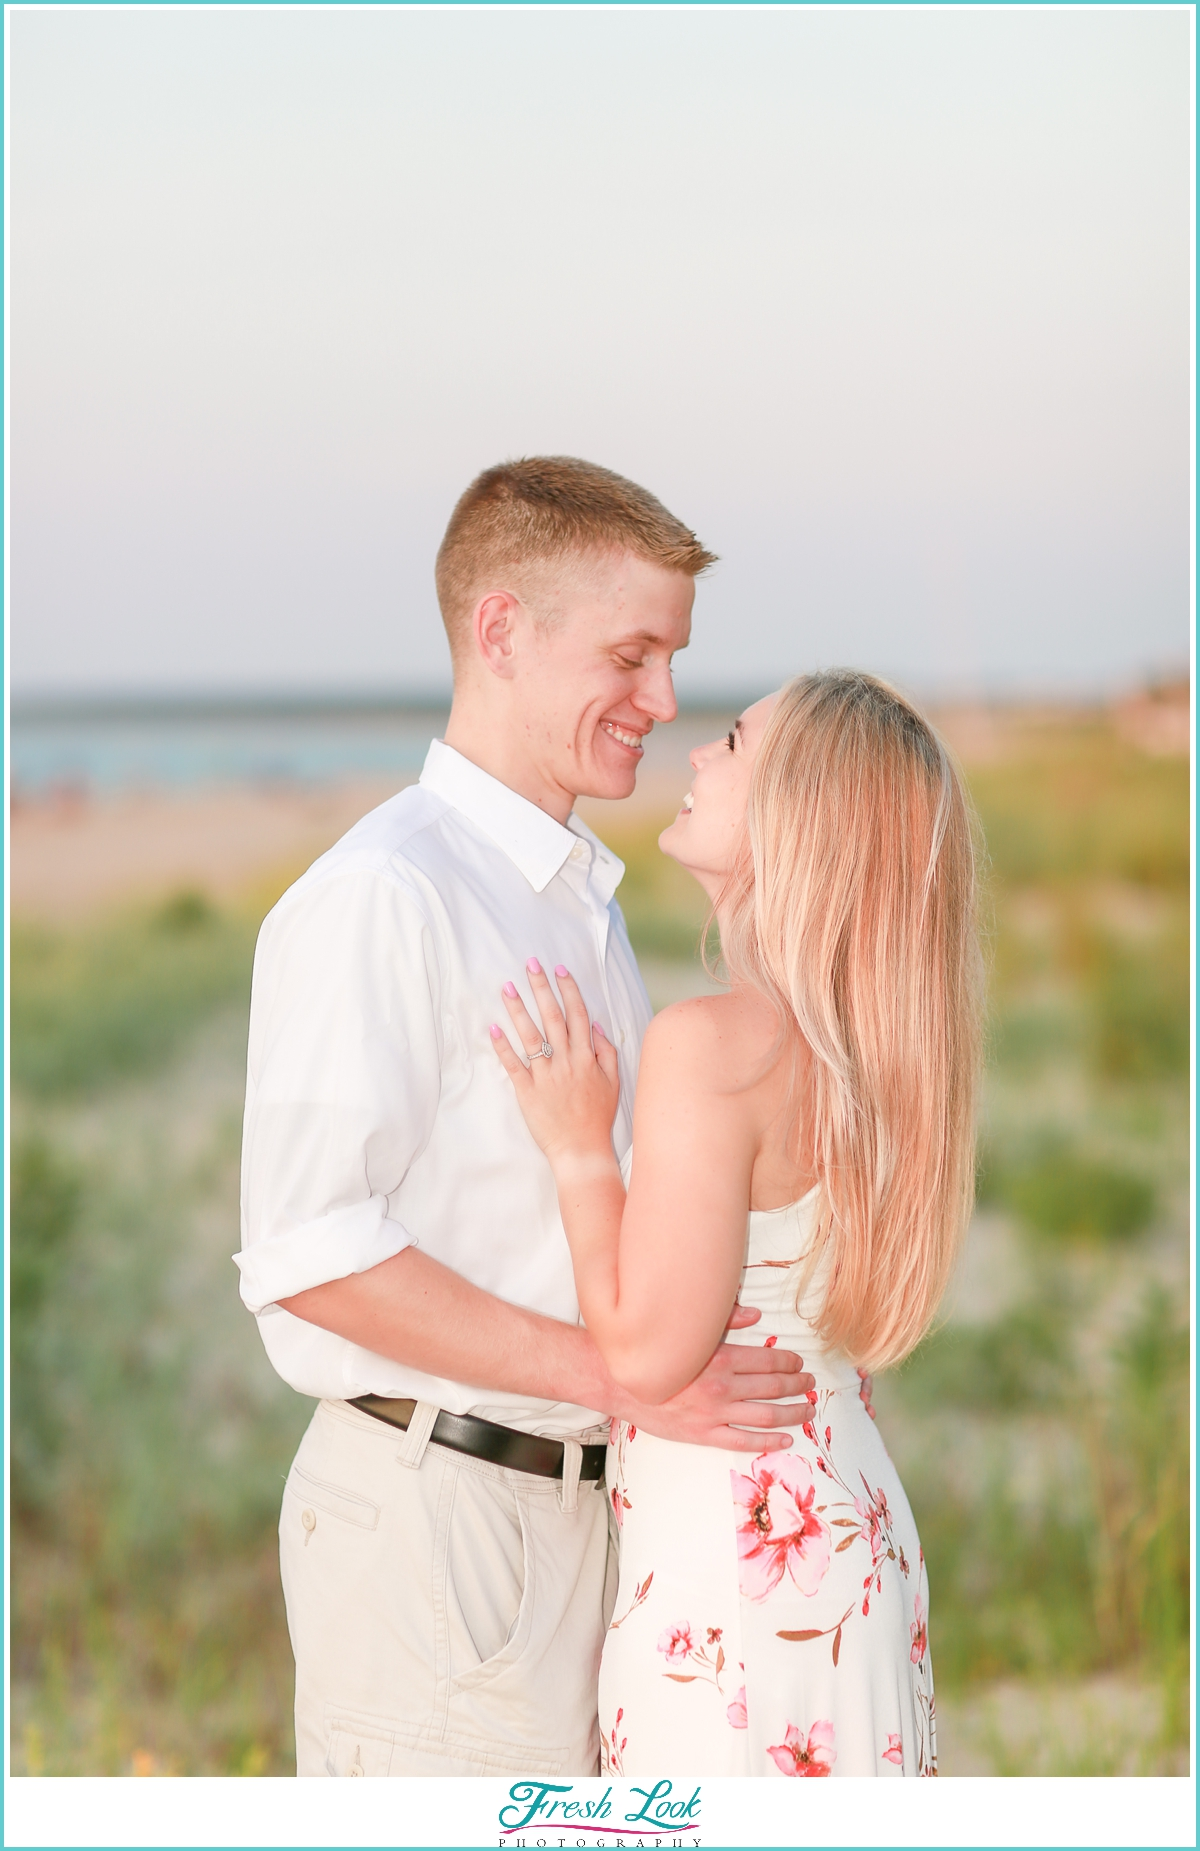 Engagement Photoshoot on the beach